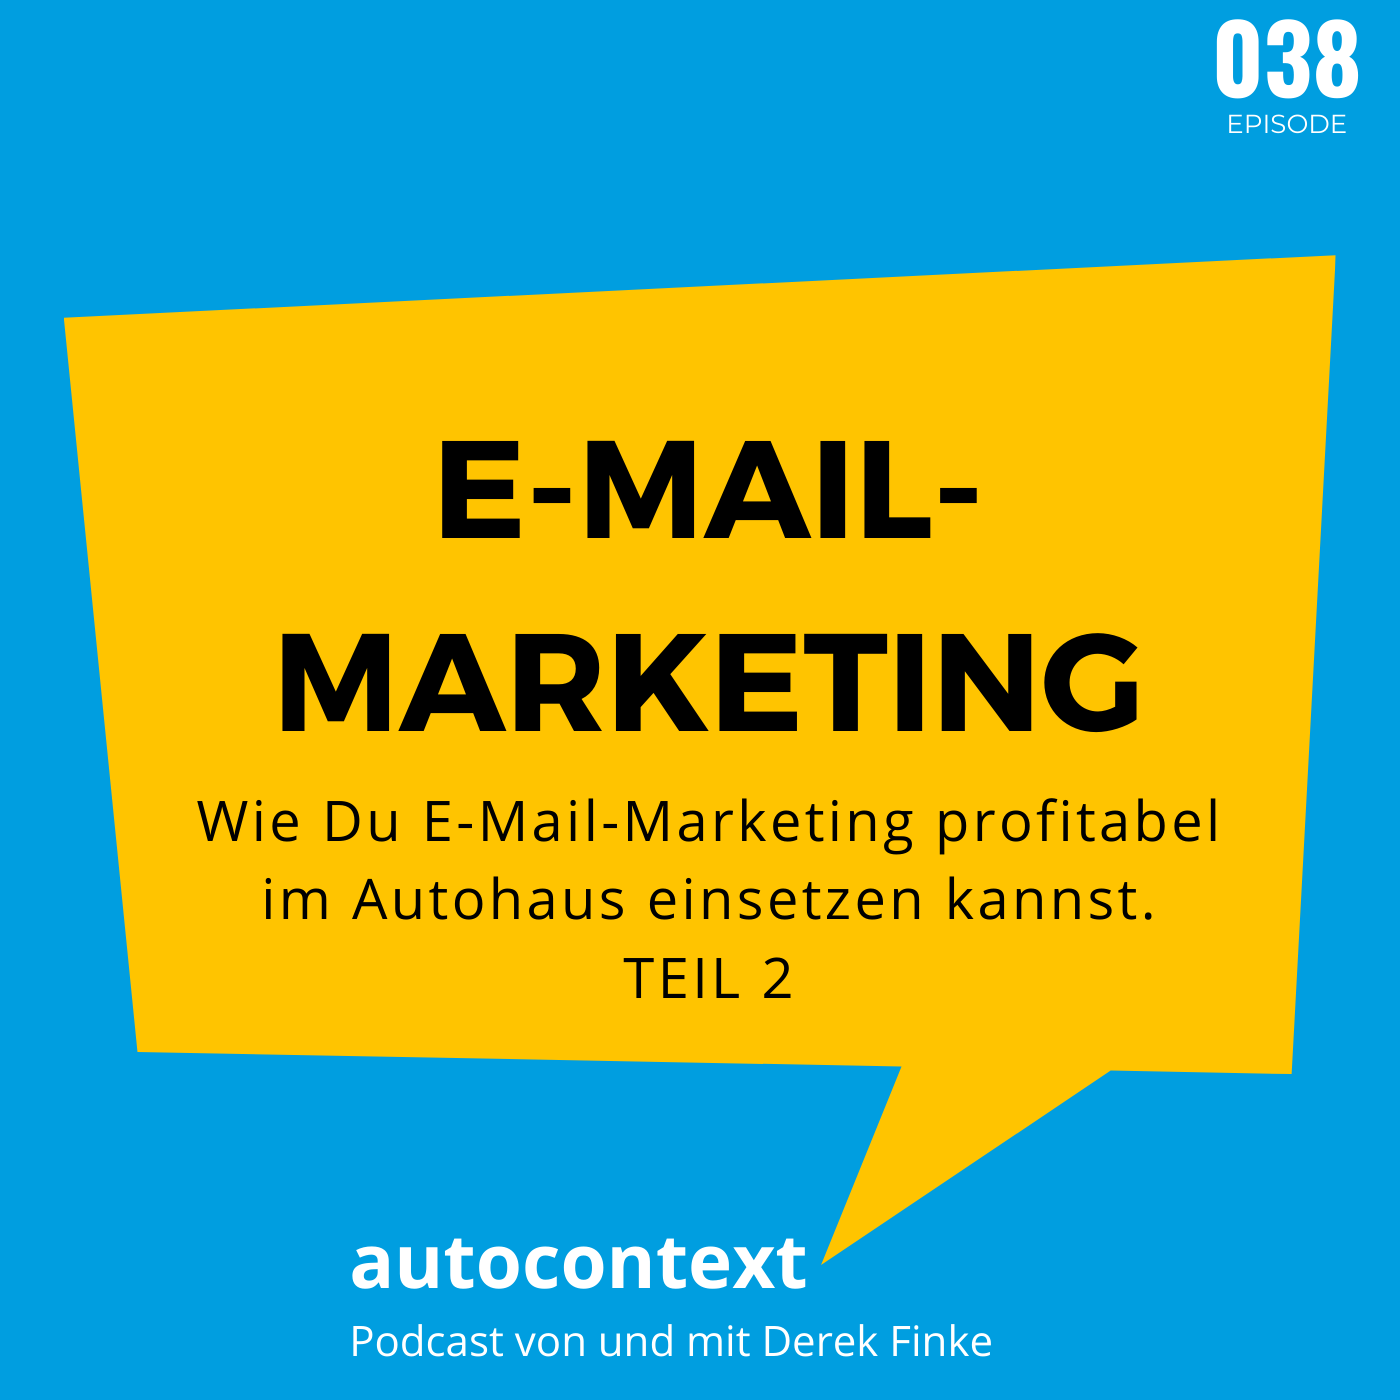 E-Mail-Marketing - Teil 2